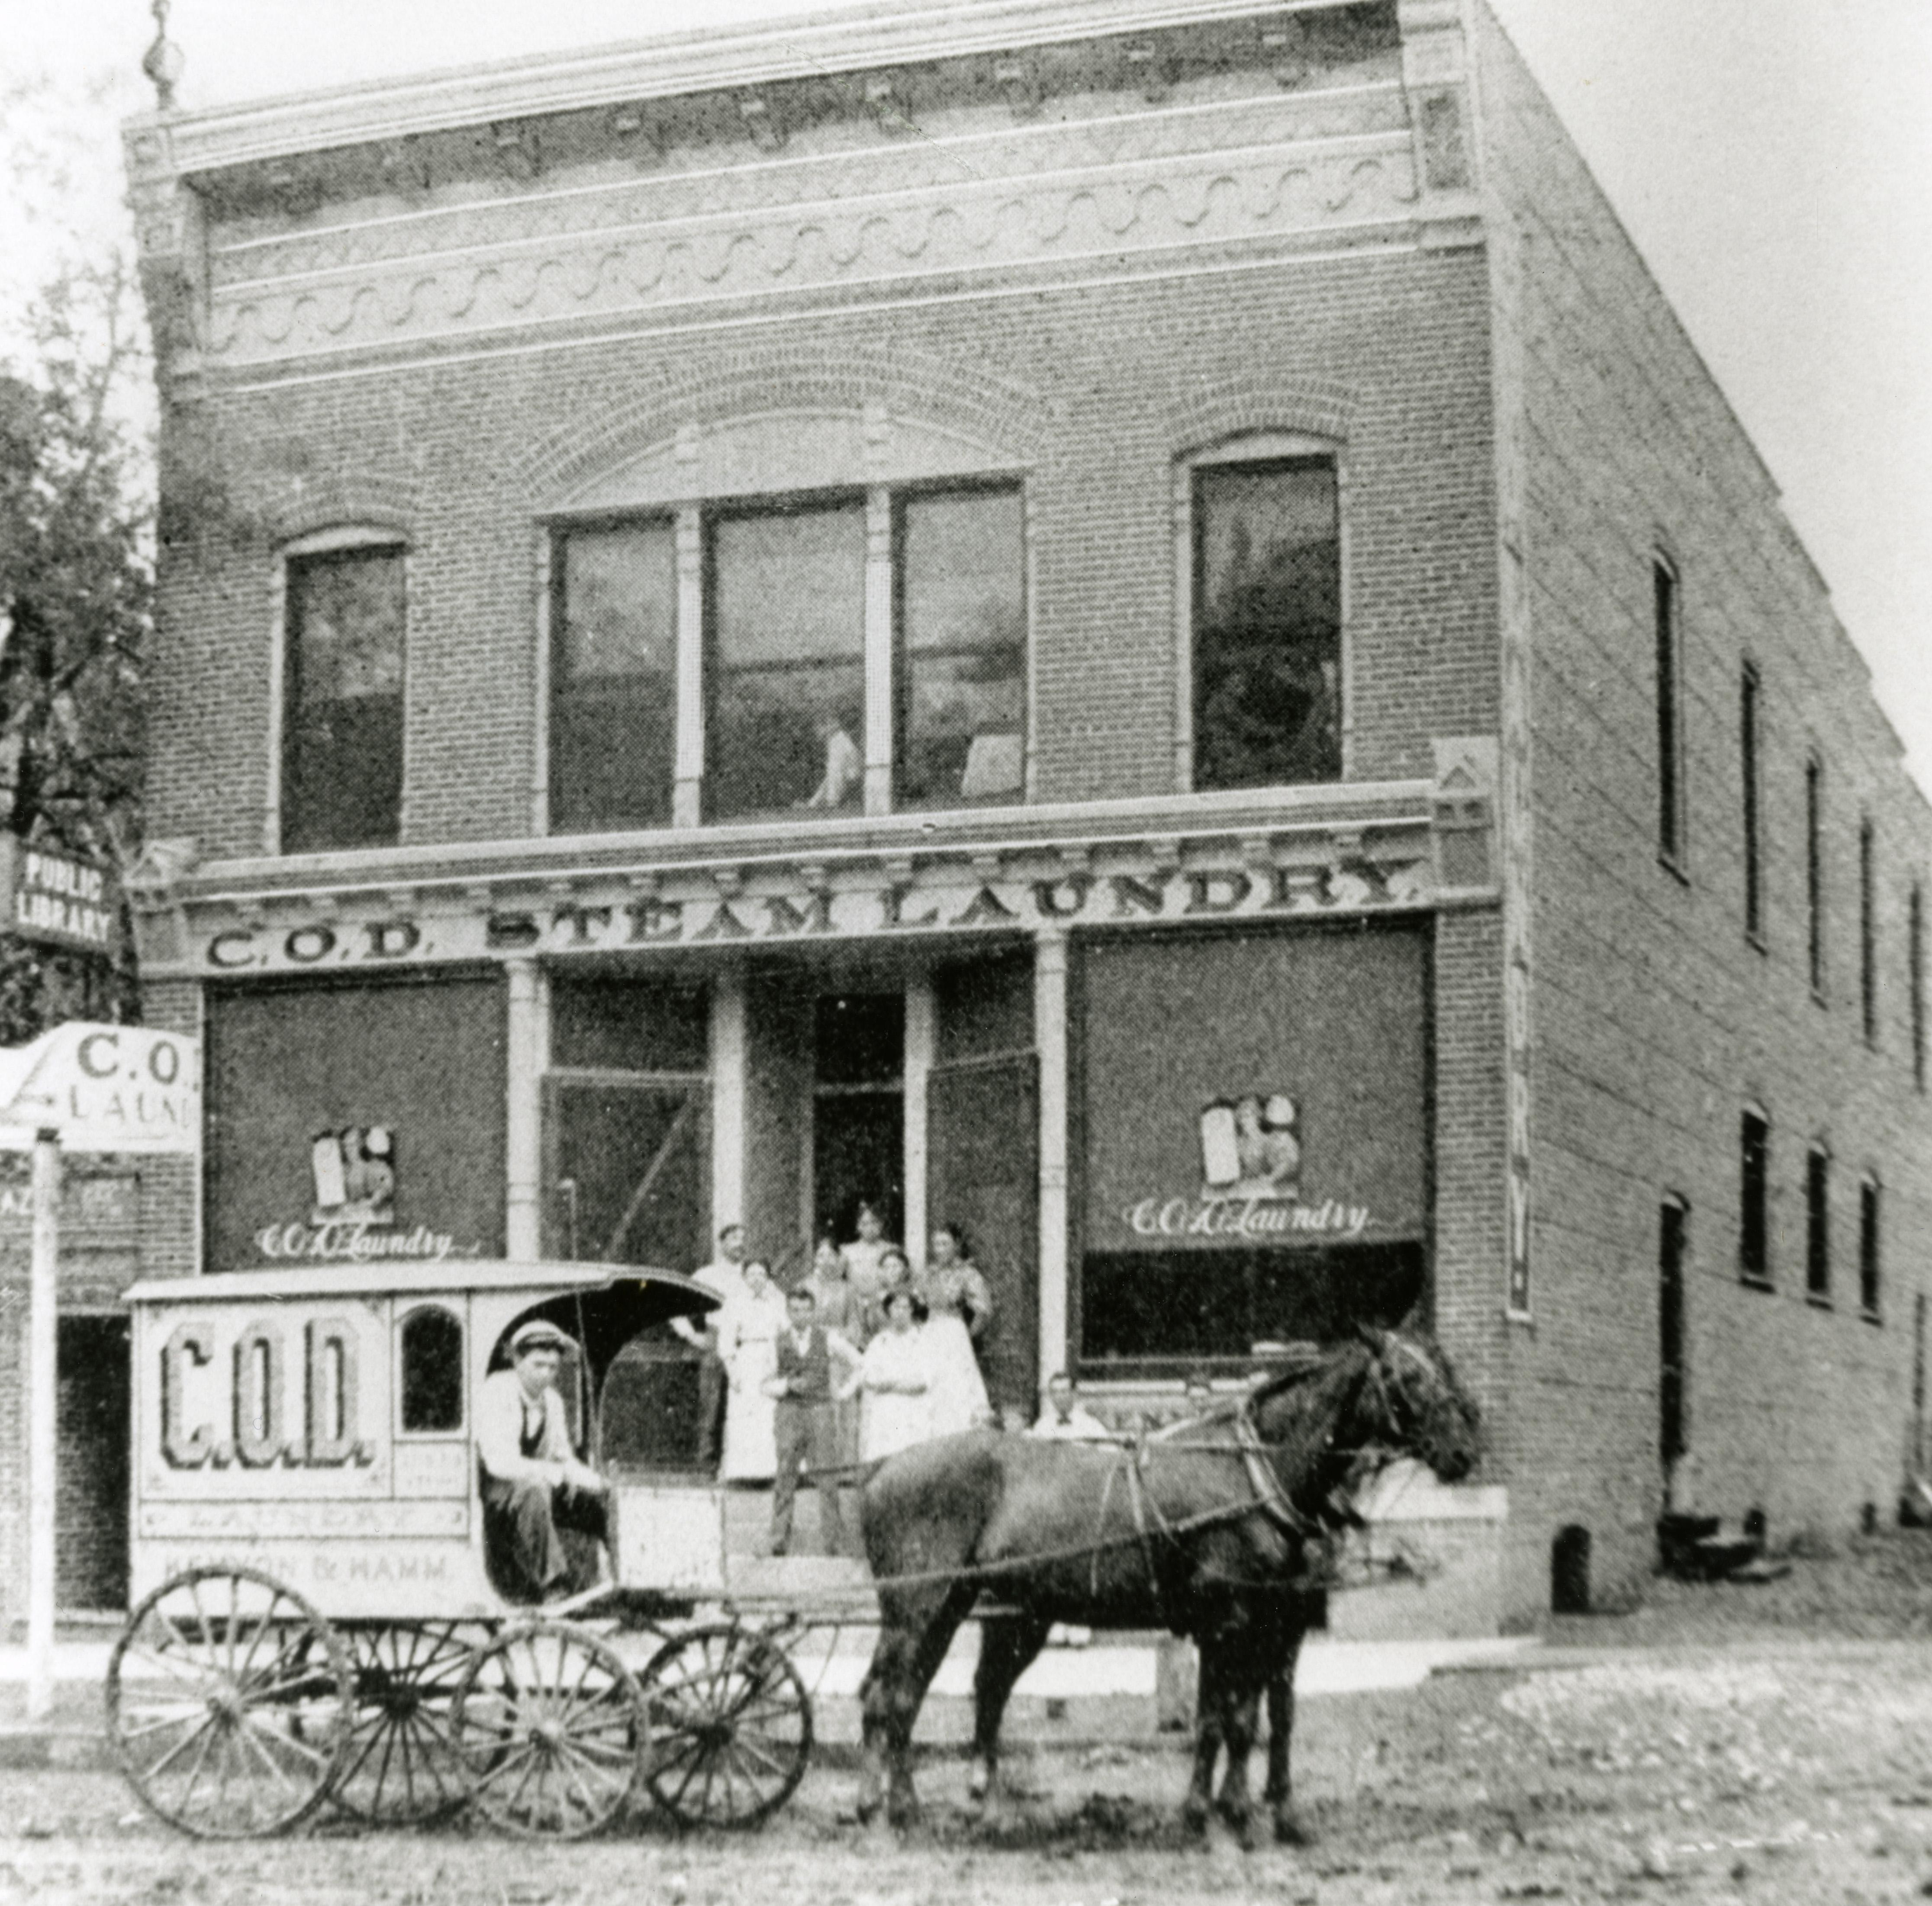 First location of the Iowa City Public Library, the C.O.D. Steam building